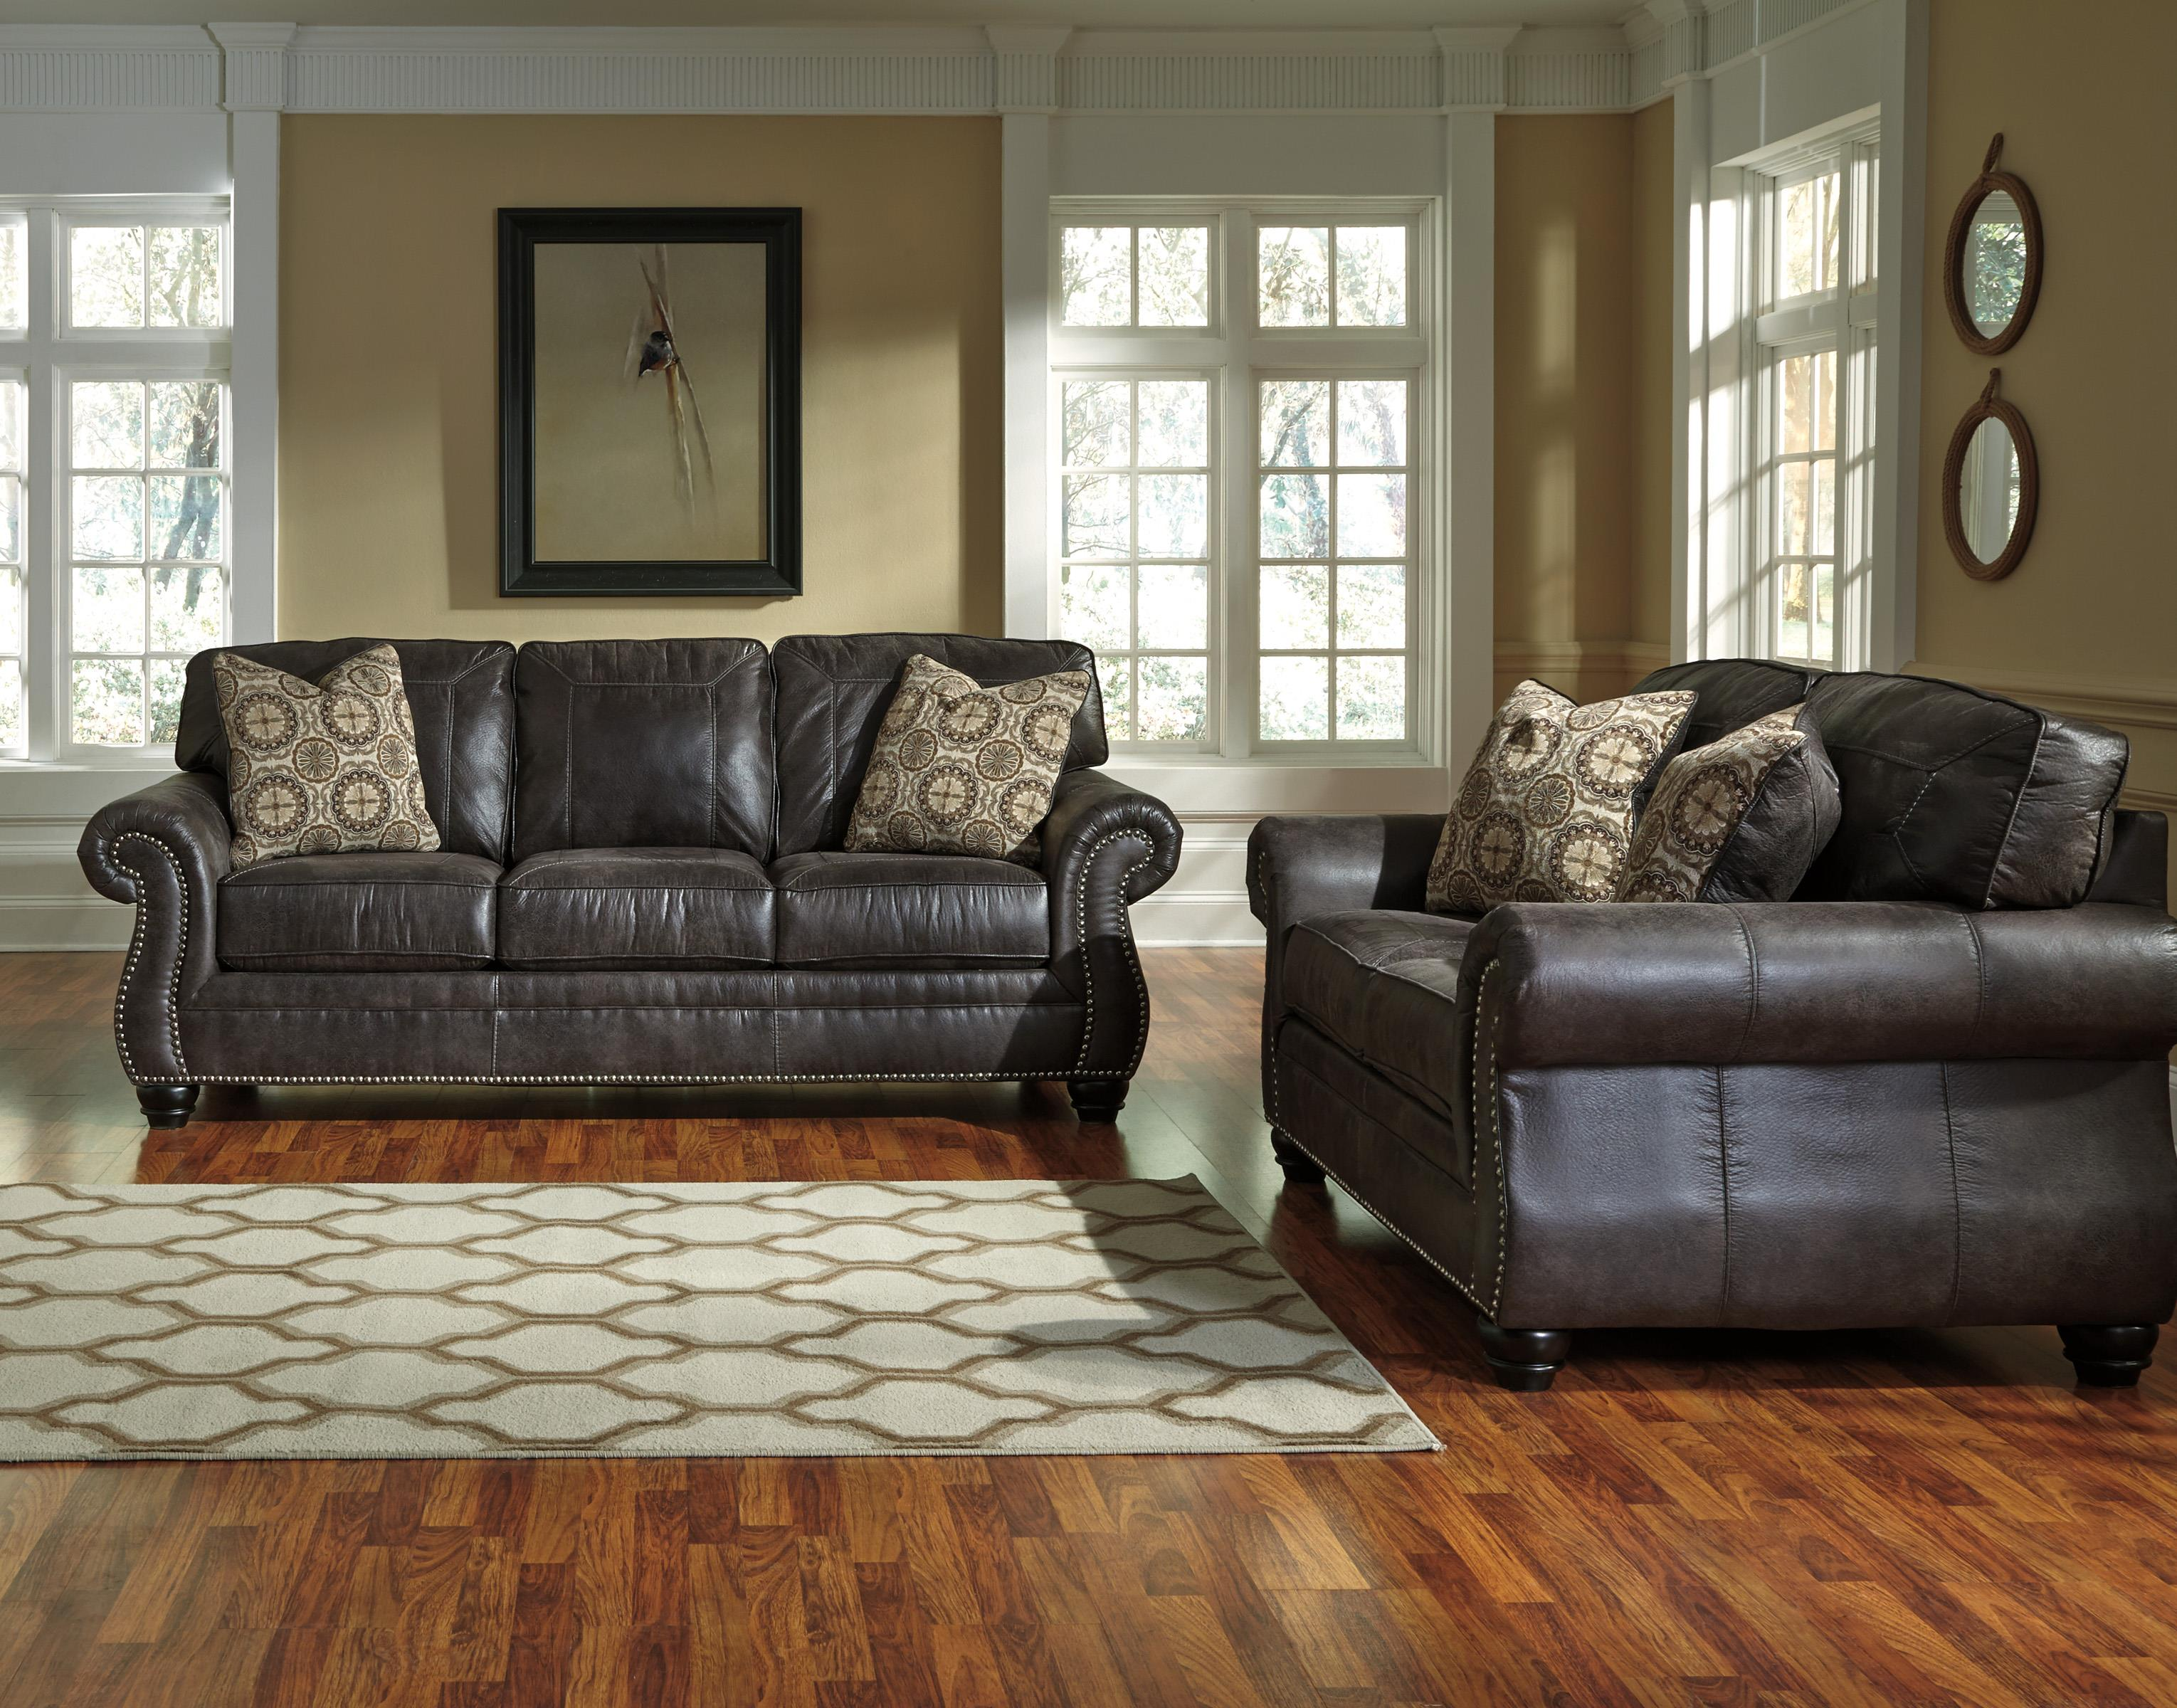 Breville Stationary Living Room Group by Benchcraft at Northeast Factory Direct